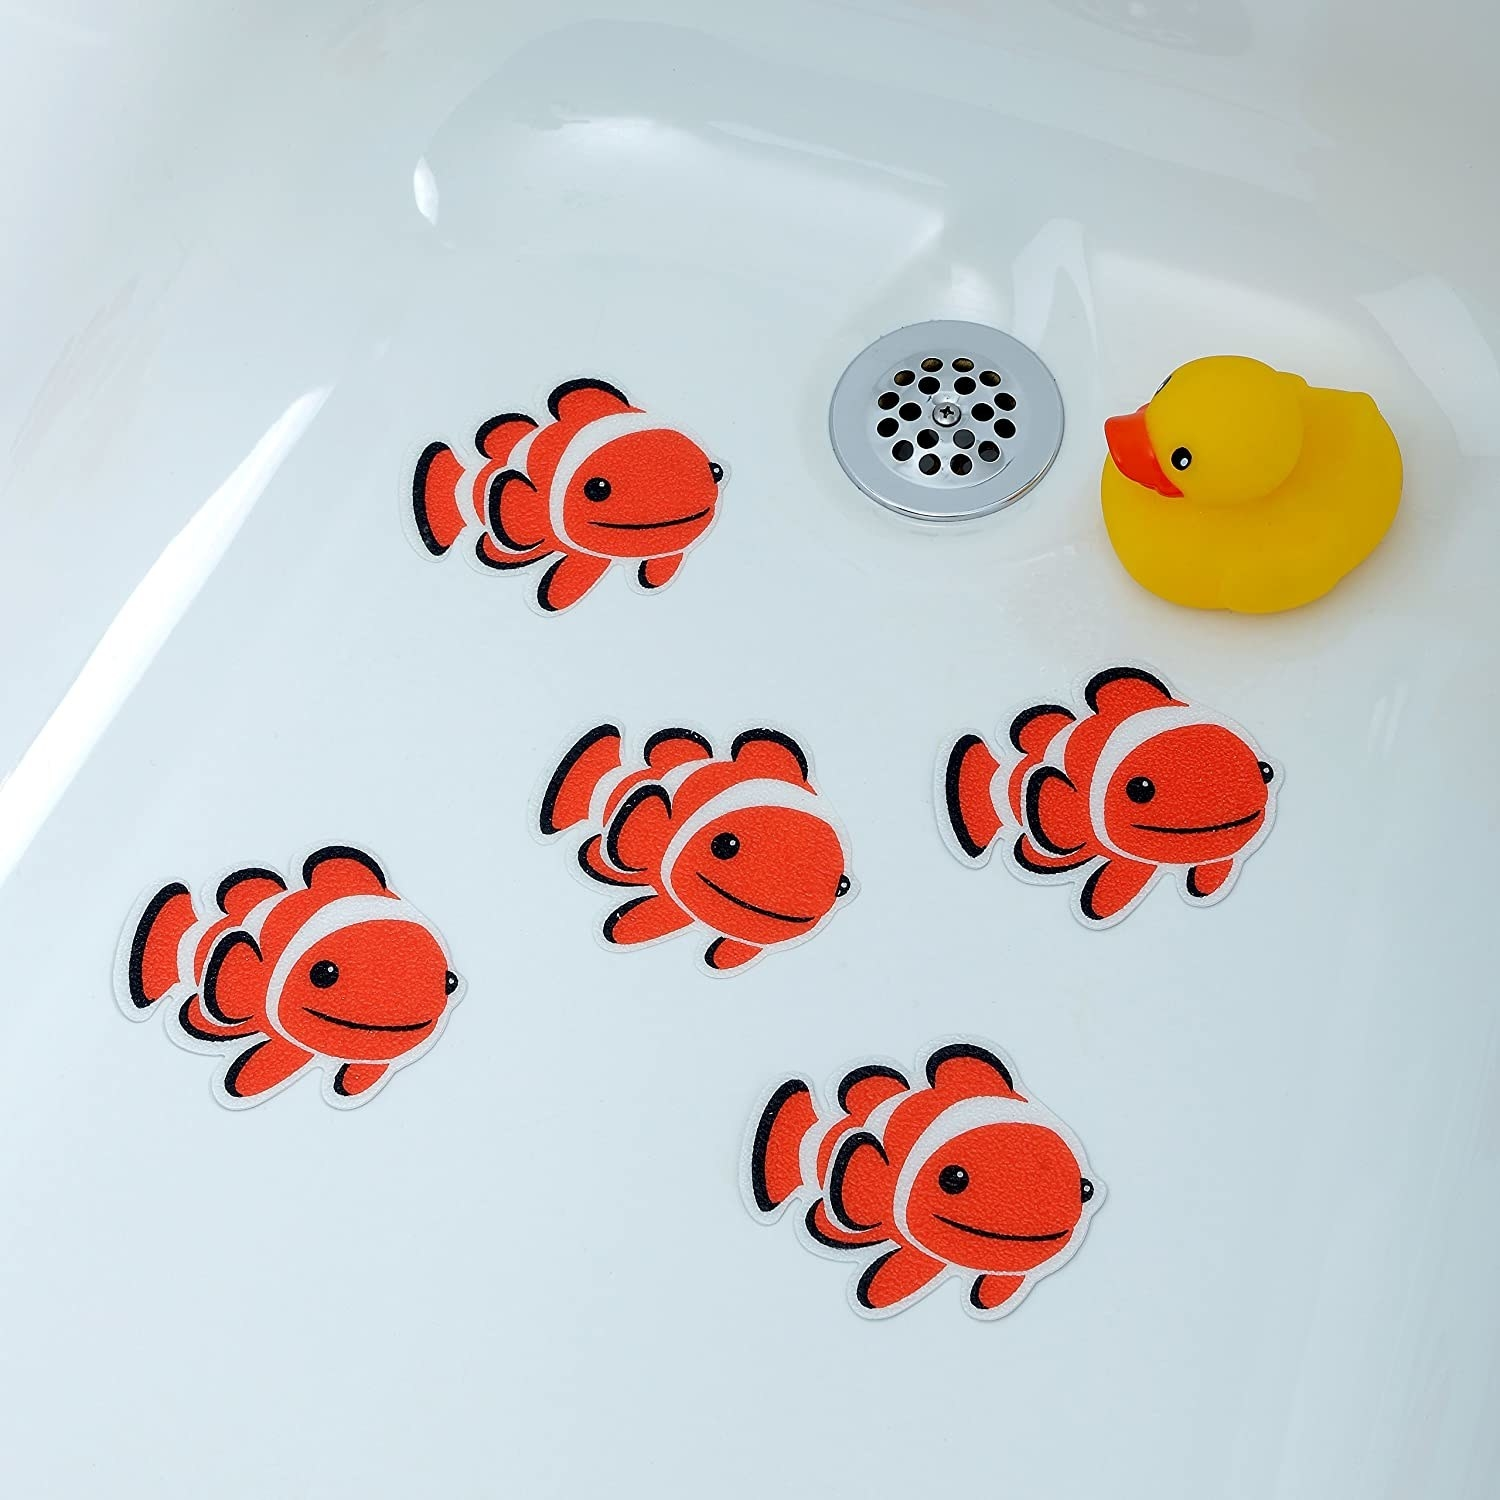 Five clownfish tub stickers on the bottom of a bathtub with a rubber ducky